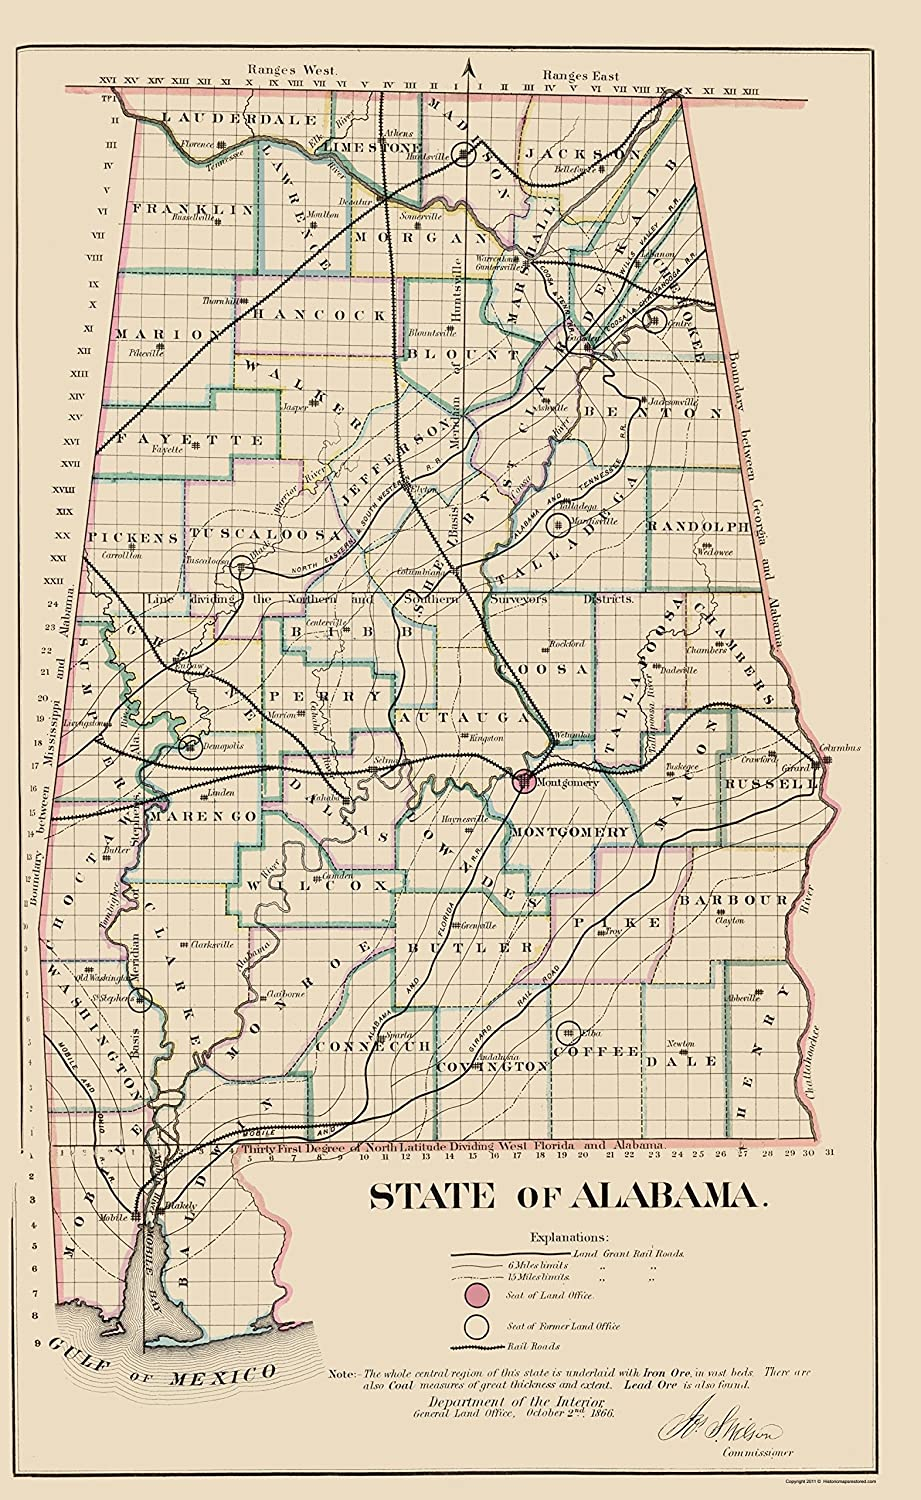 Amazon.com: MAPS OF THE PAST Alabama - Glo 1866-23 x 37.48 ... on gpt map, gev map, gus map, dan map, givenchy map, globe map, goa map, gog map,